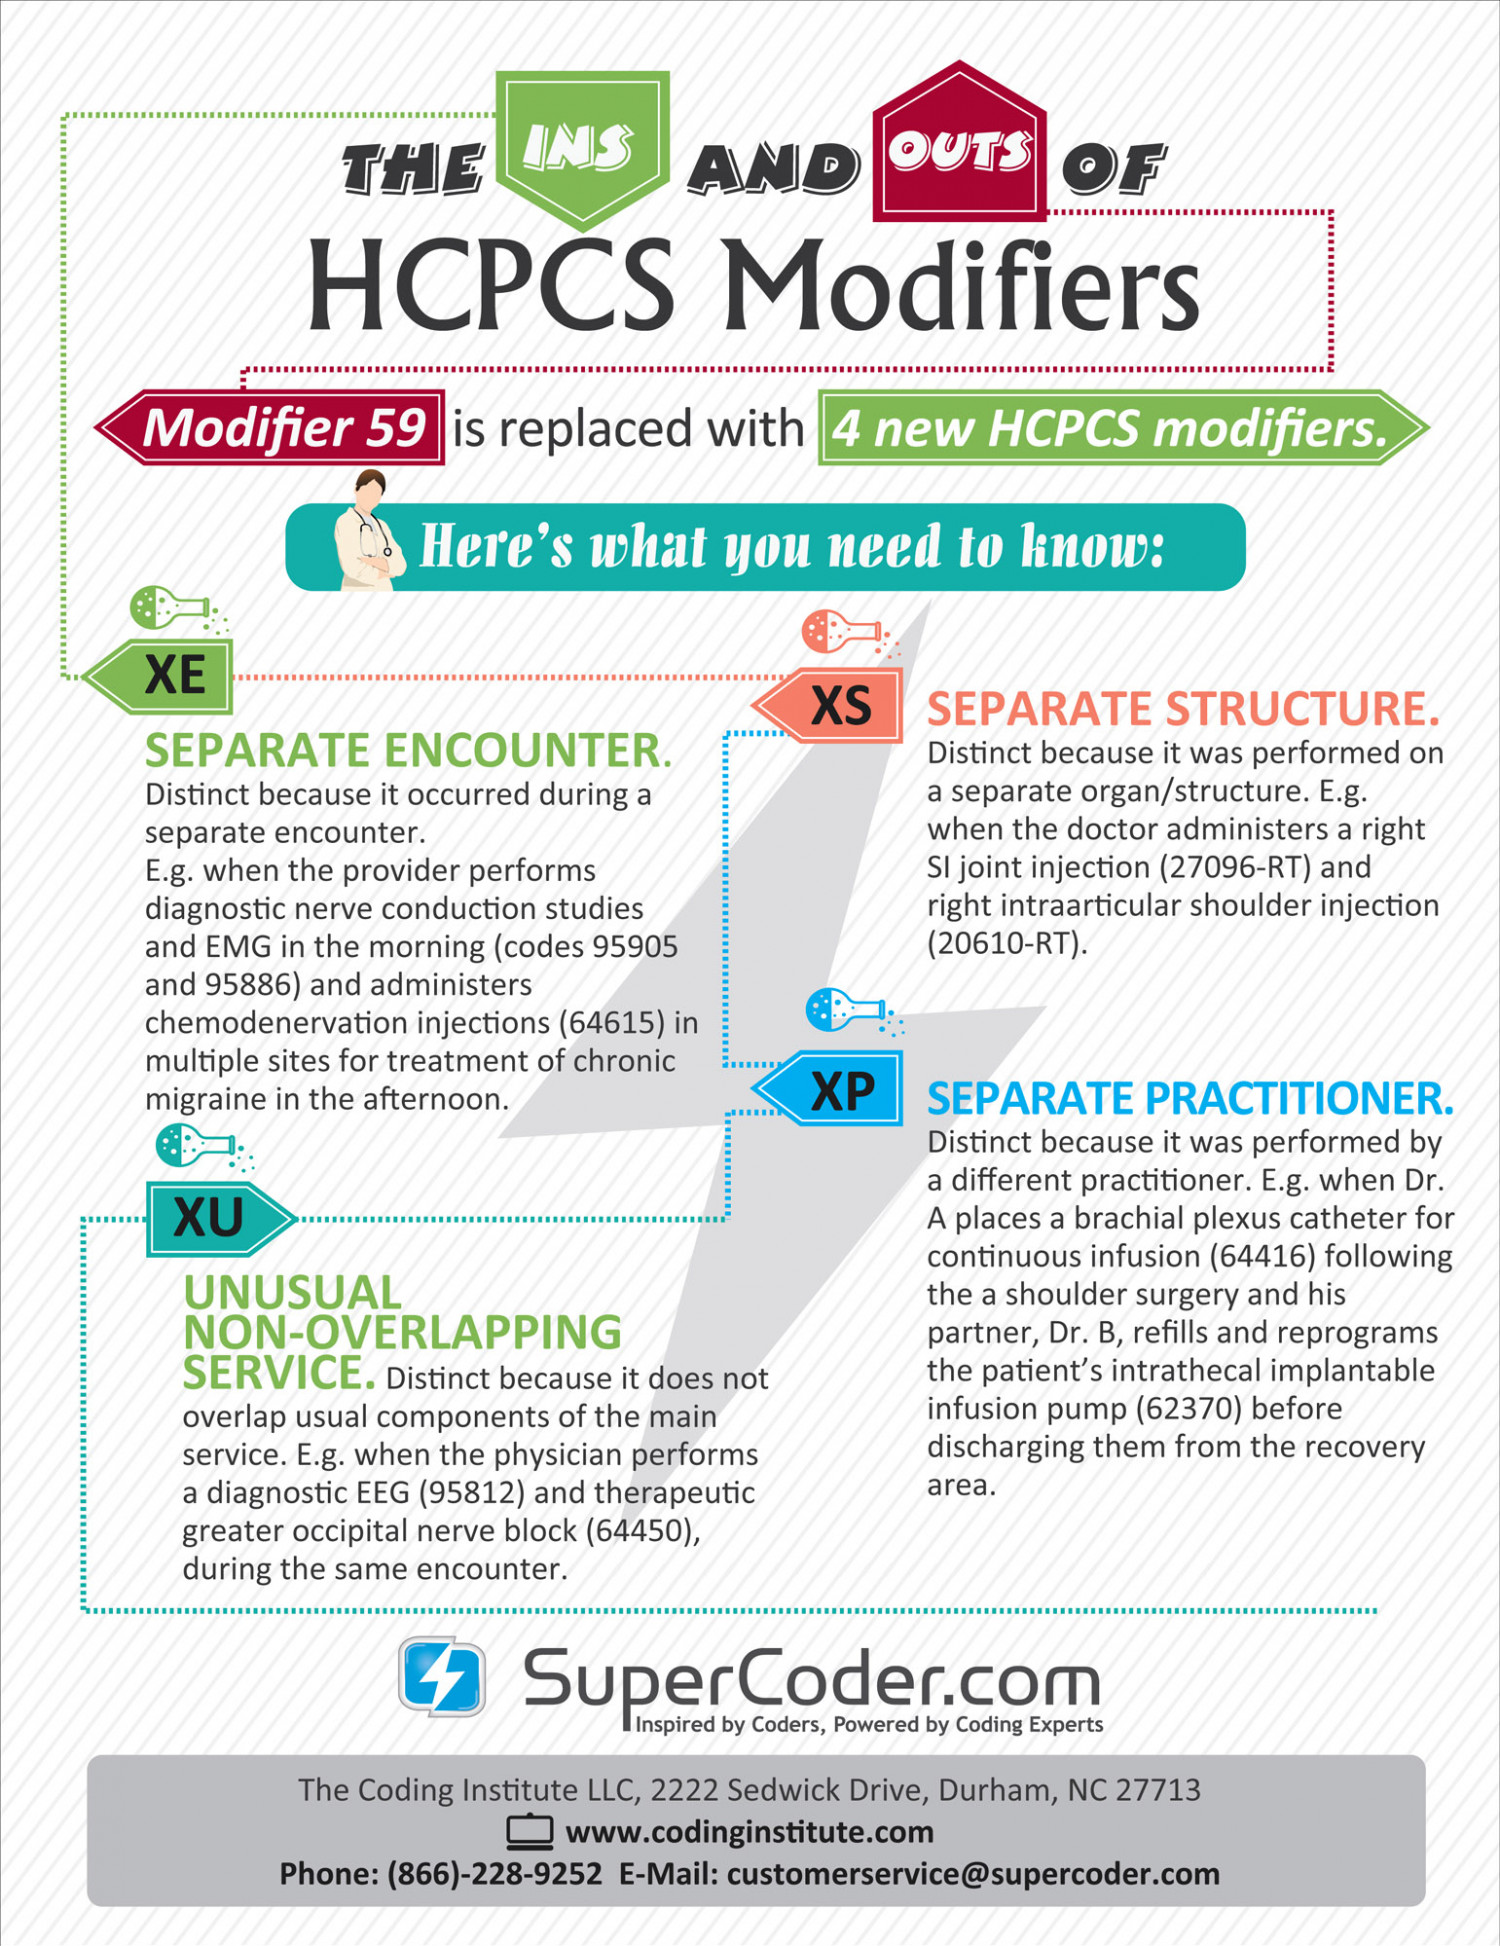 Ins outs HCPCS modifiers : CMS Infographic